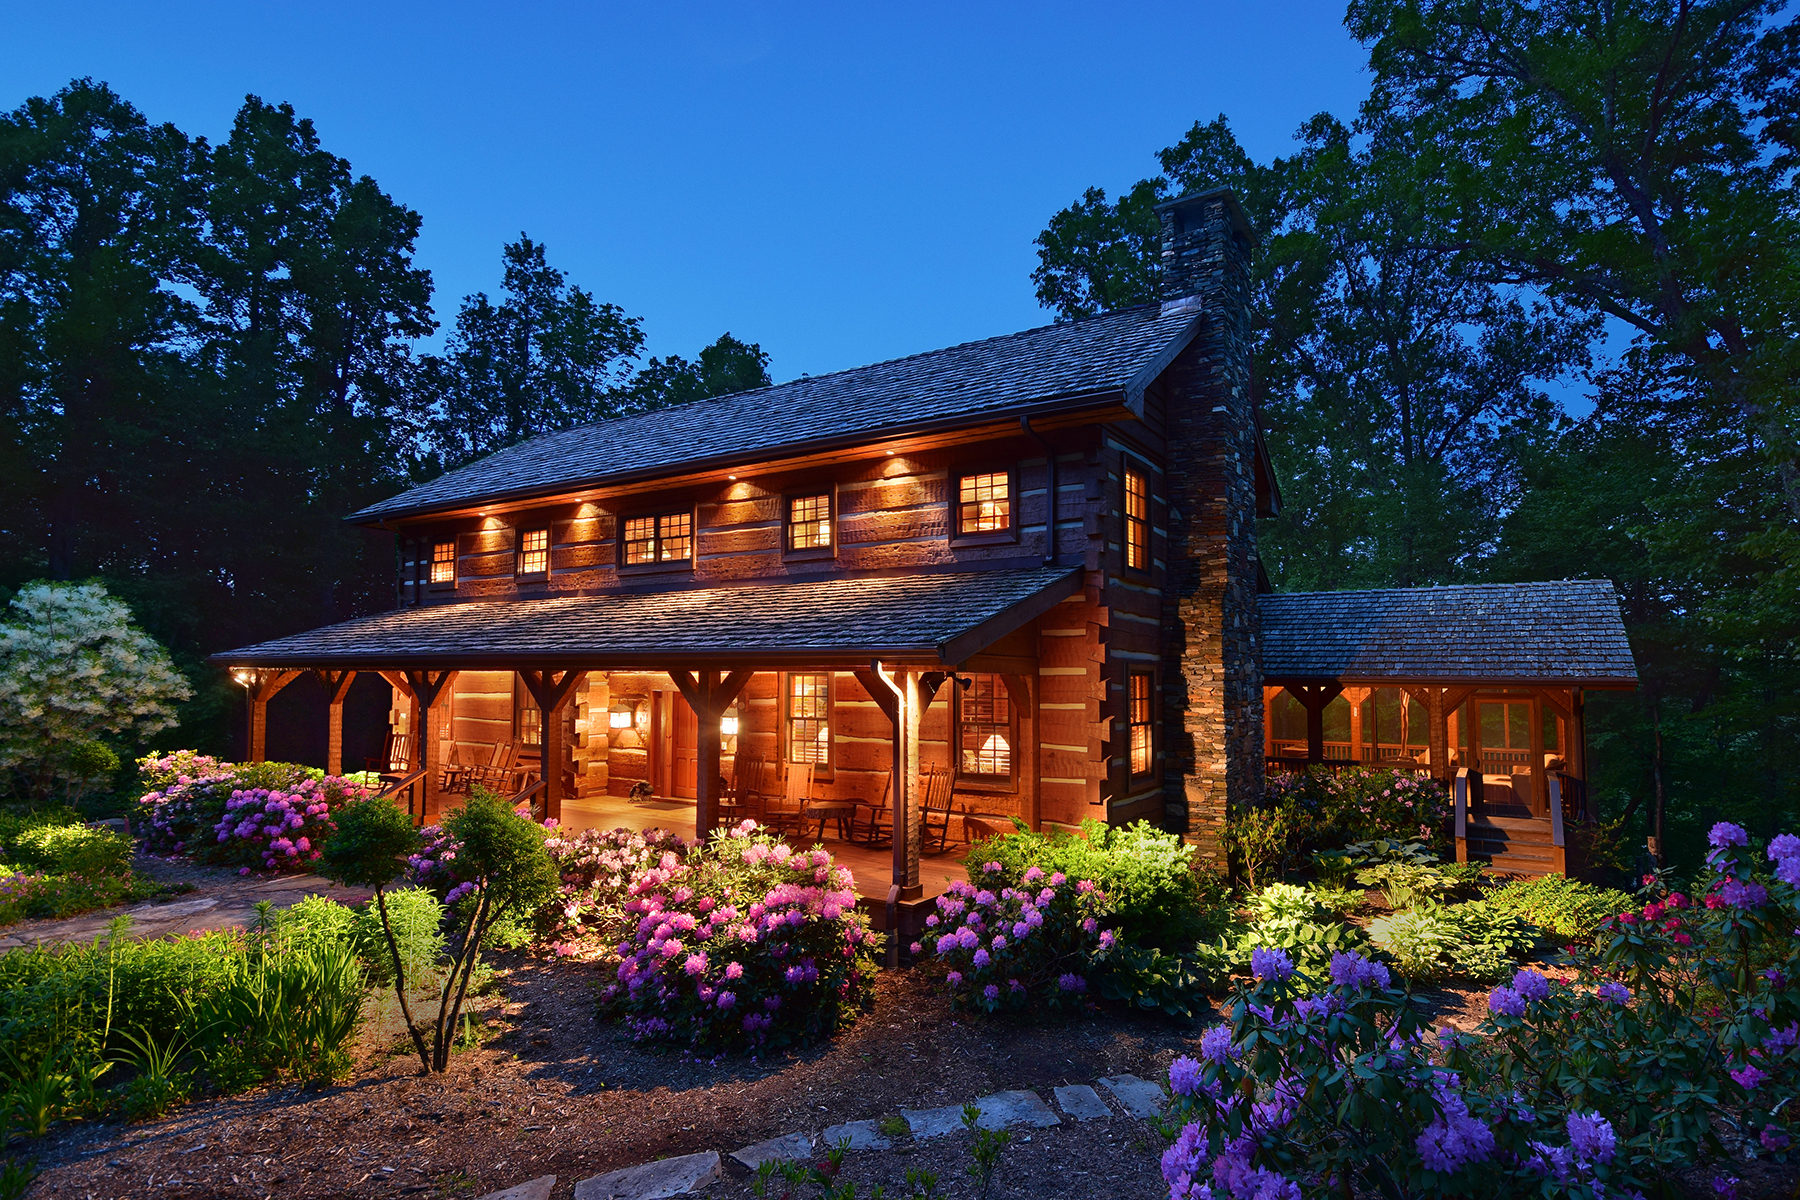 Single Family Home for Sale at 66 ACRE ESTATE 7600 Nc Hwy. 194s Banner Elk, North Carolina, 28604 United States